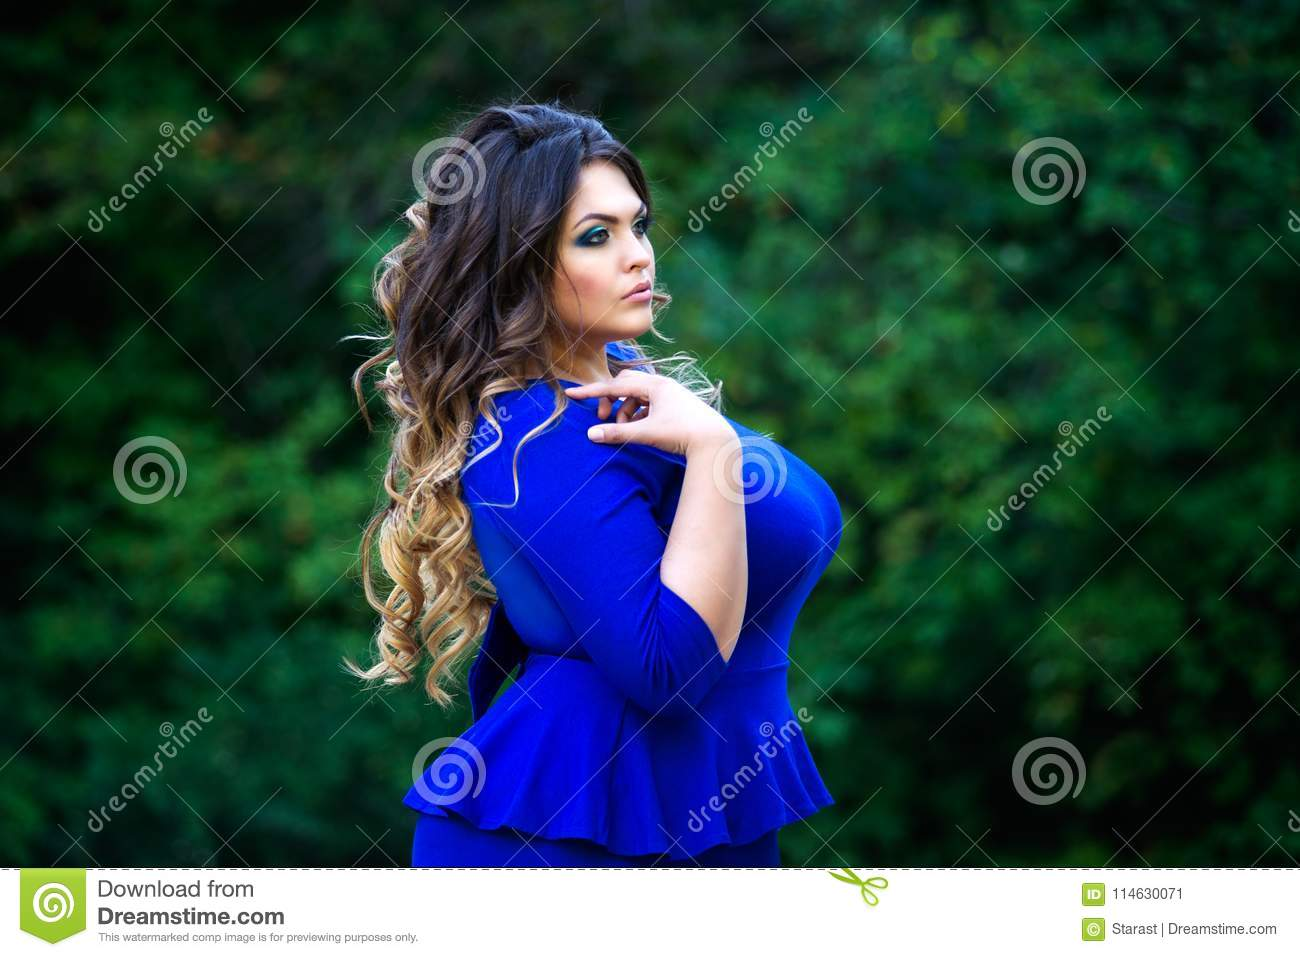 9c2a7994cb2f2 Plus Size Fashion Model In Blue Dress Outdoors, Beauty Woman With ...